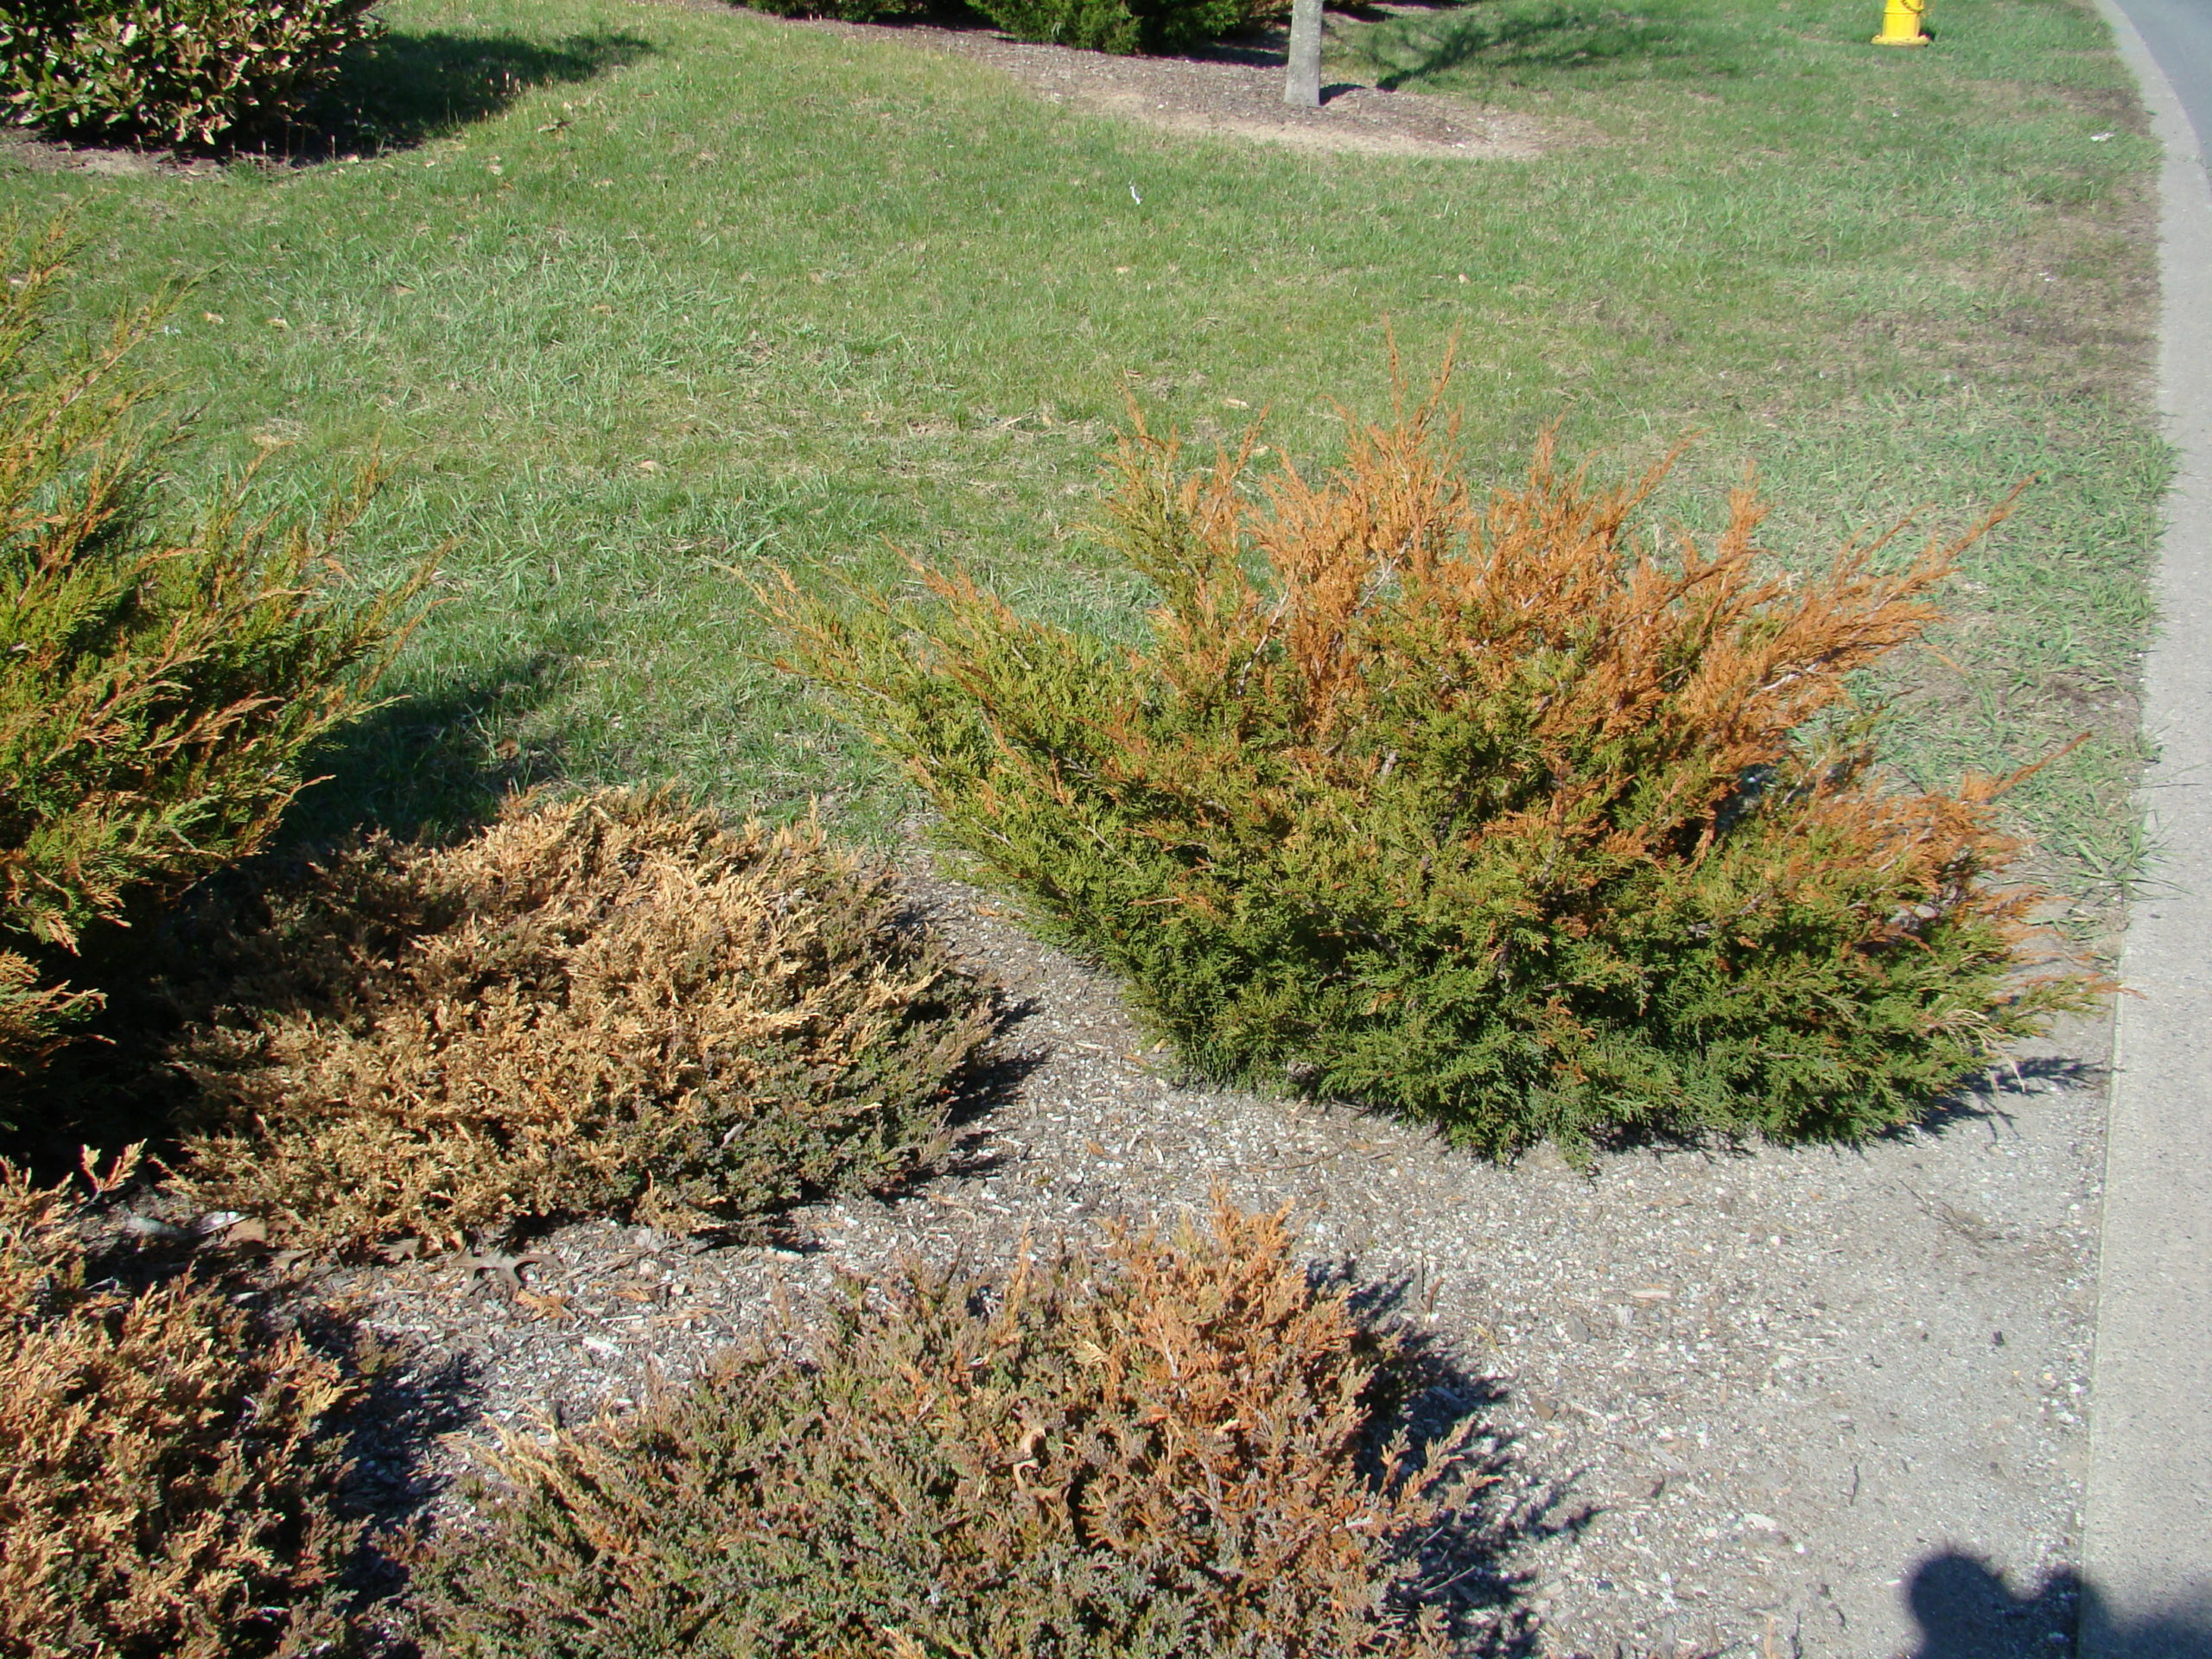 These junipers were burned in the winter from road salt applied just feet away. It appears that the damage is from roots being burned from salt splashing into the bed from the road as well as burning from salt that may have been in the snow plowed onto the planting bed.